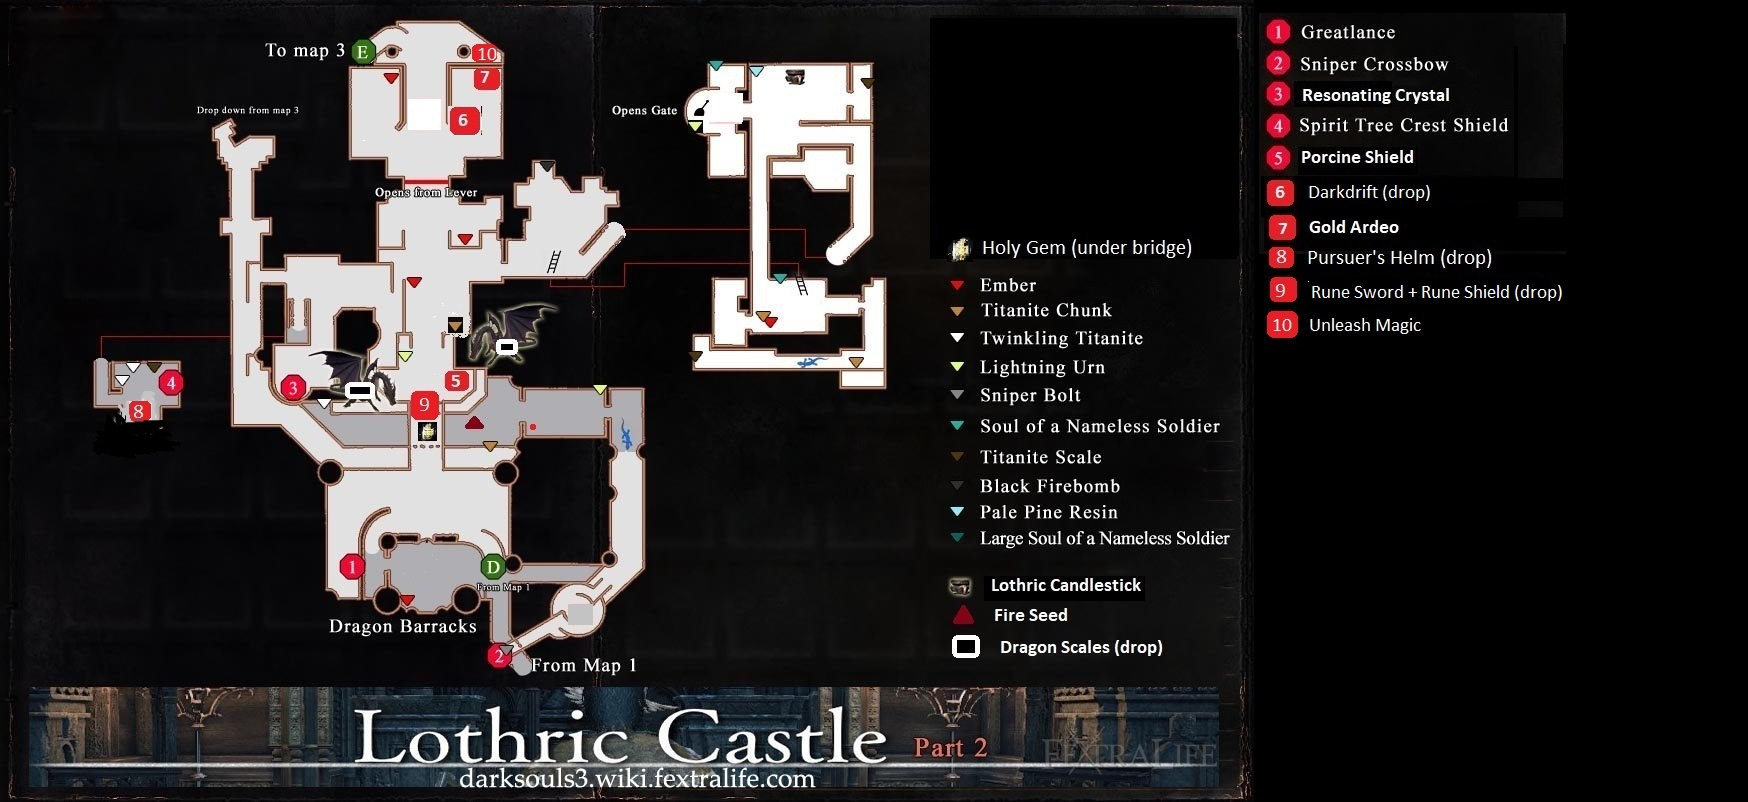 lothric_castle_map2.jpg